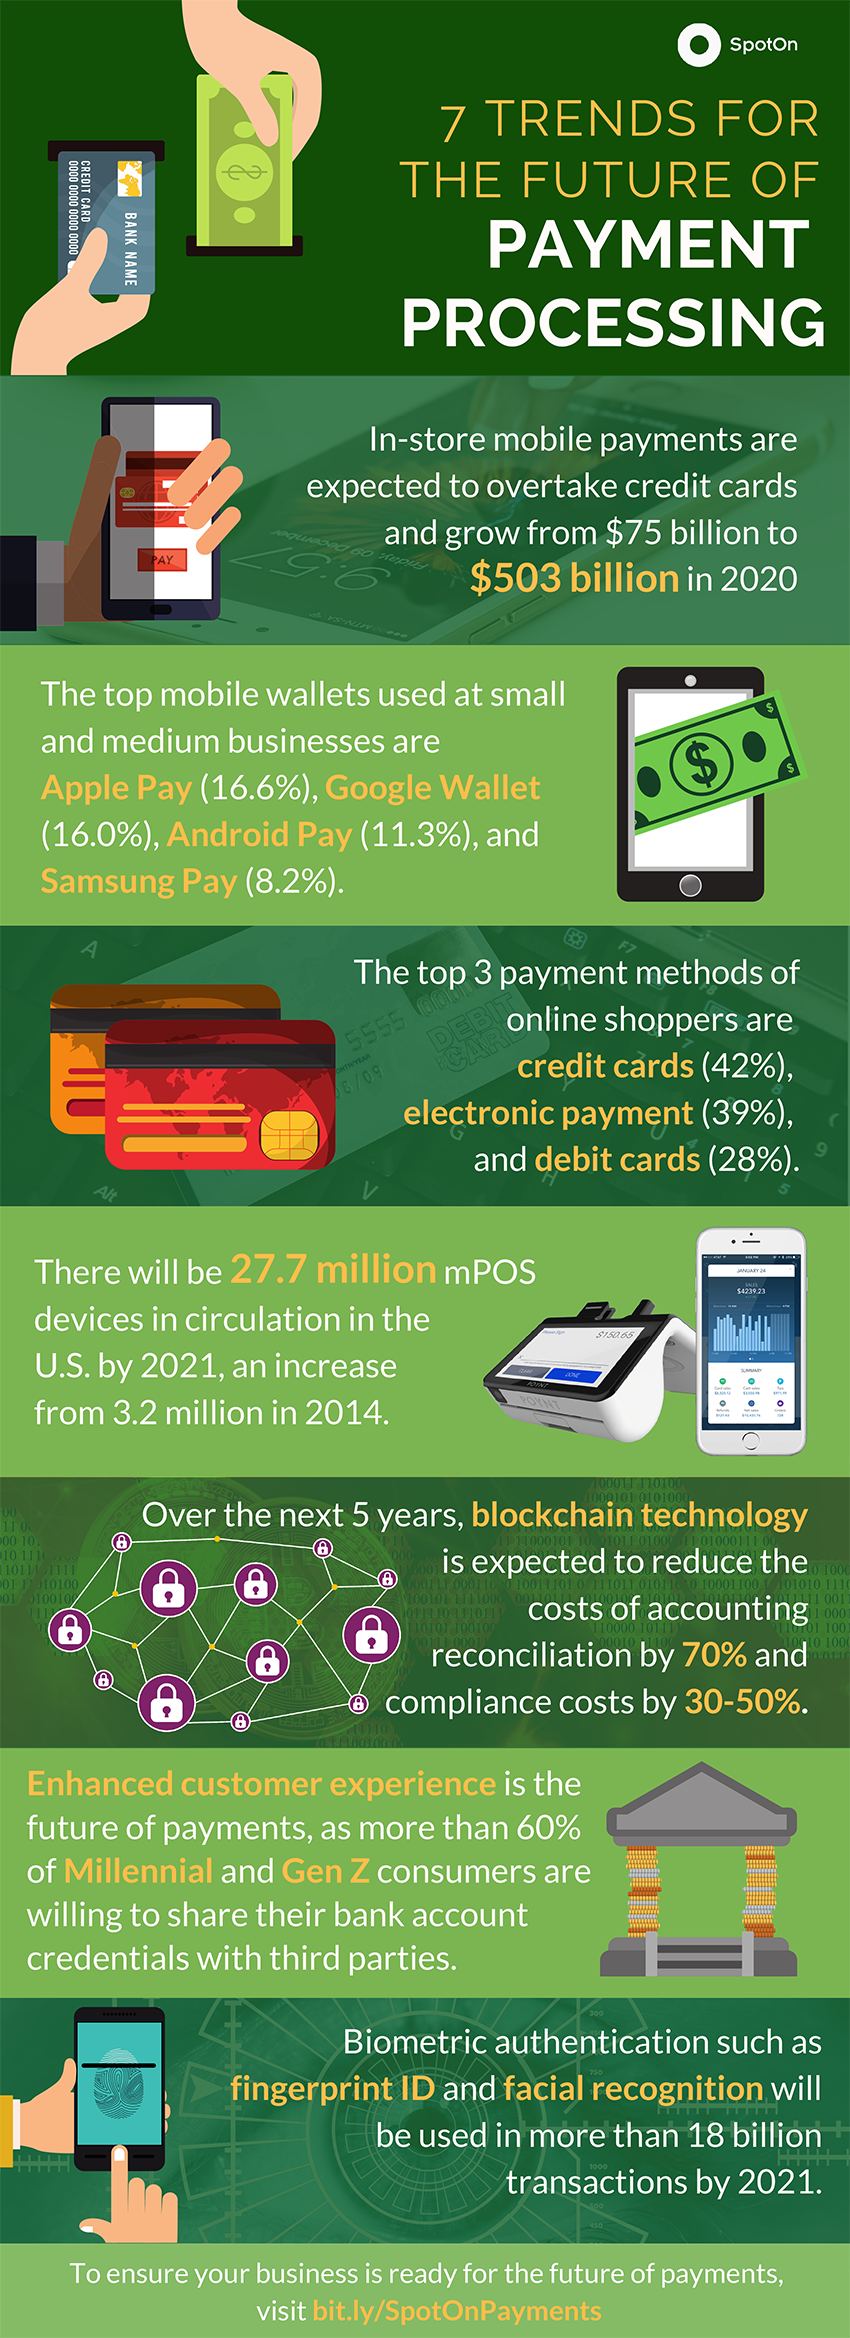 Payment Processing Trends: The Future of Payment Processing (INFOGRAPHIC)